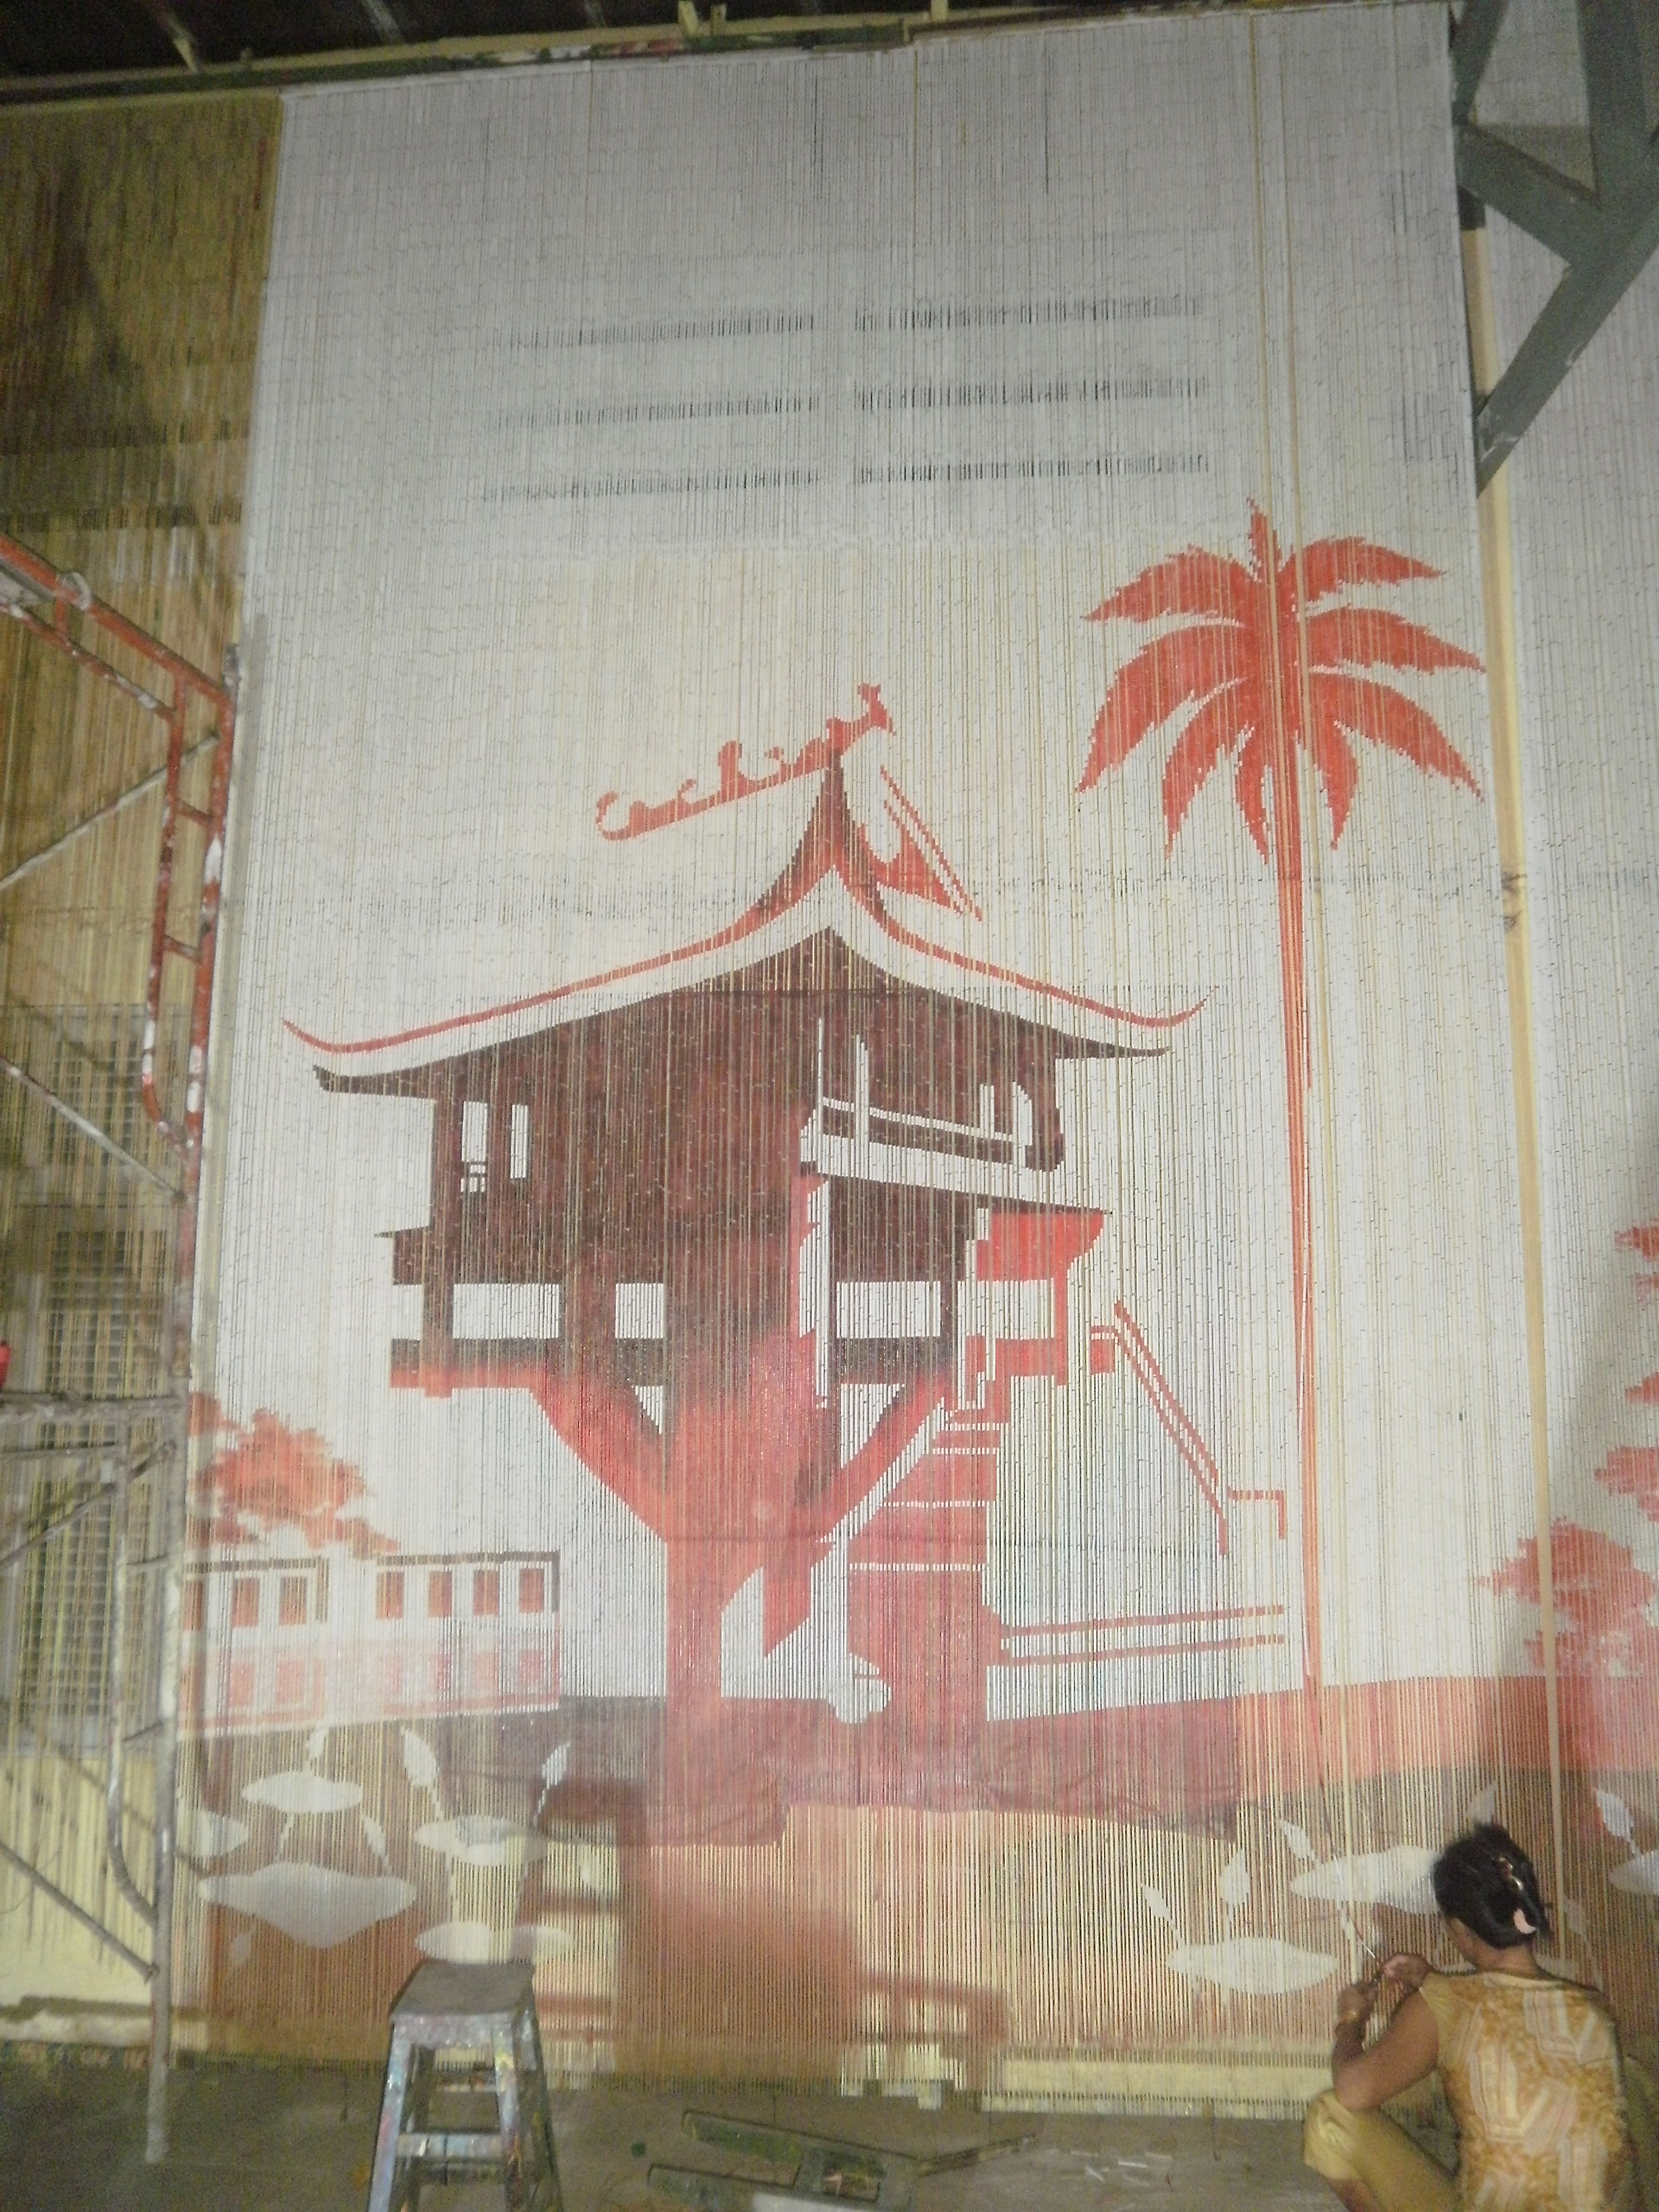 Curtain manufacturing in Vietnam